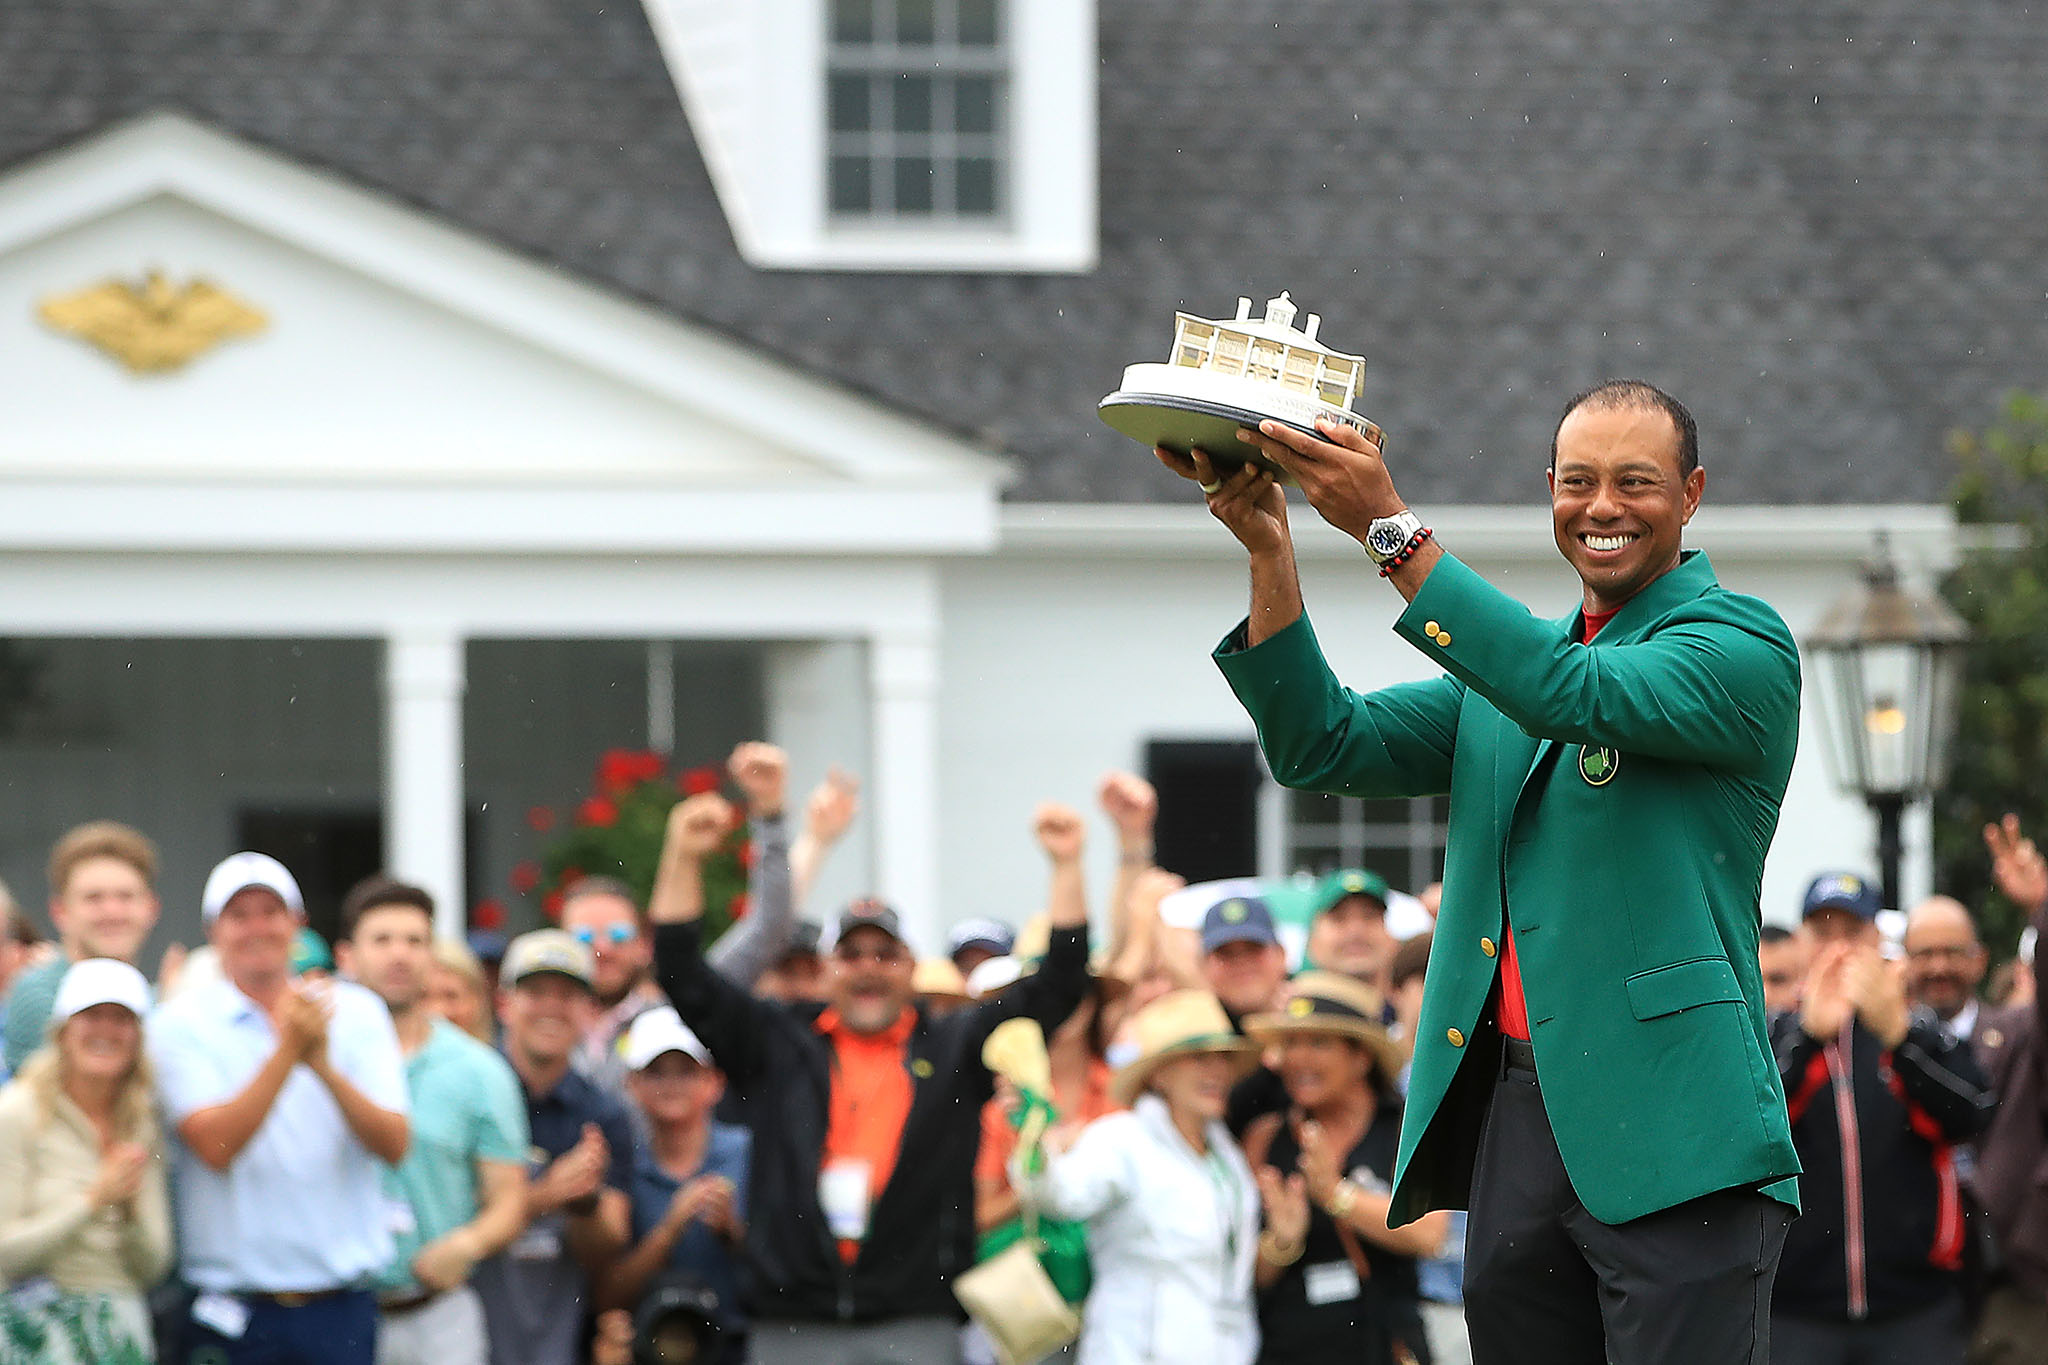 Us masters betting trends side role bettinger photography